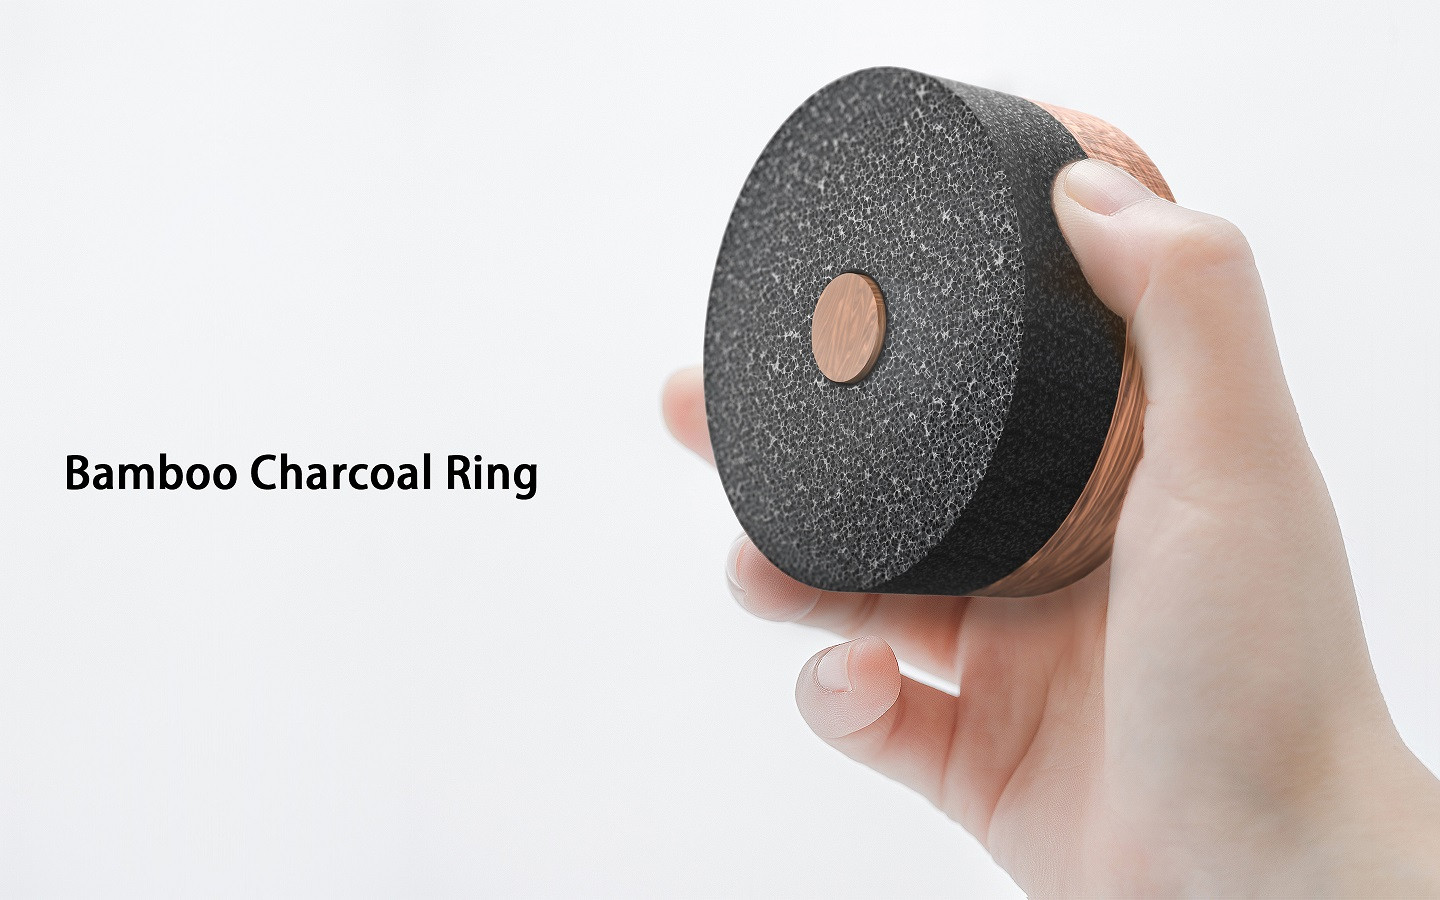 Bamboo Charcoal Ring